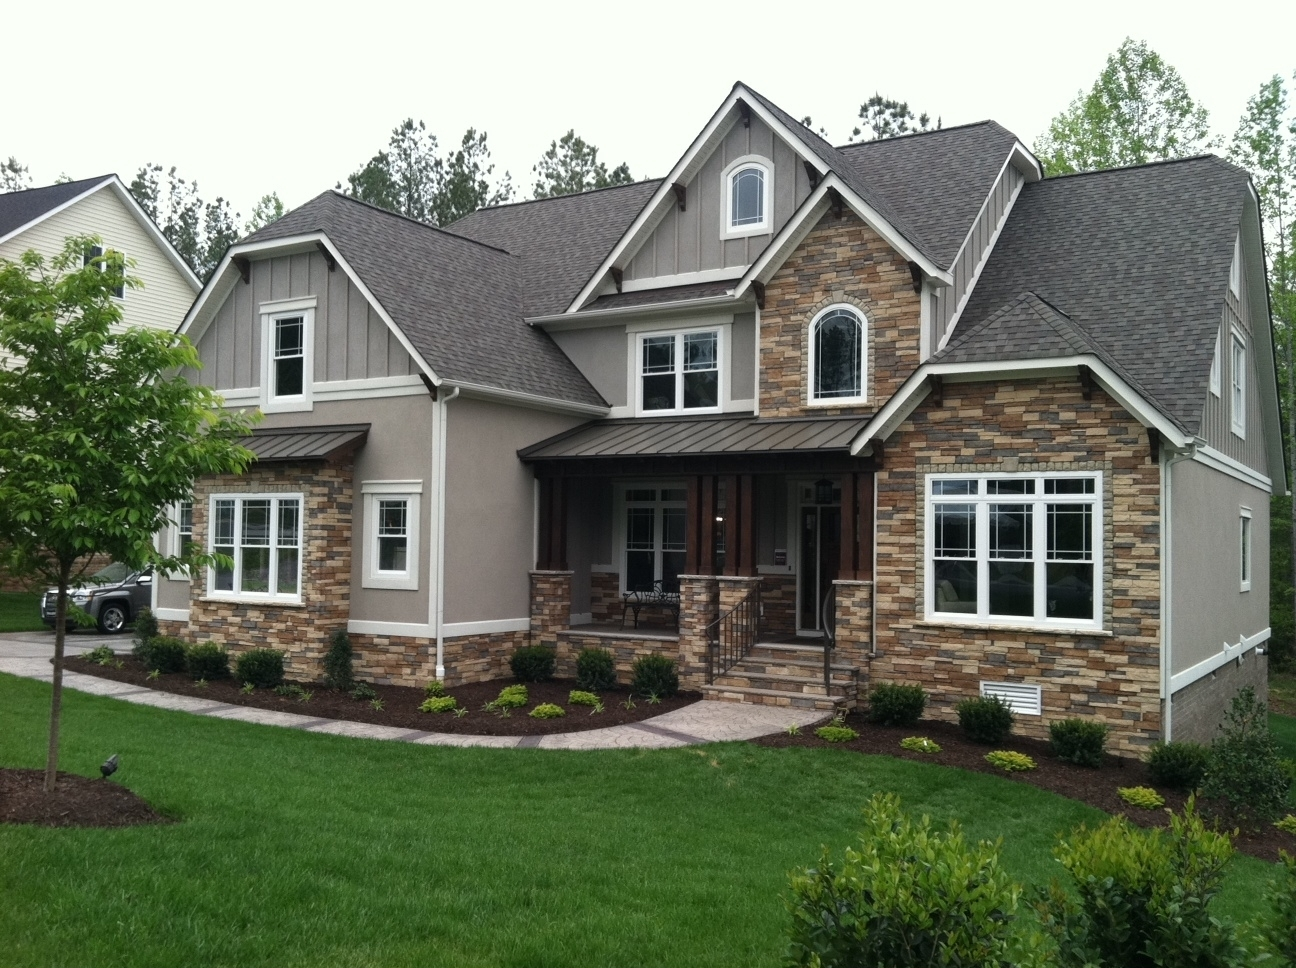 Cheap House Design Ideas Split Level House Siding Ideas Madison Art Center Design